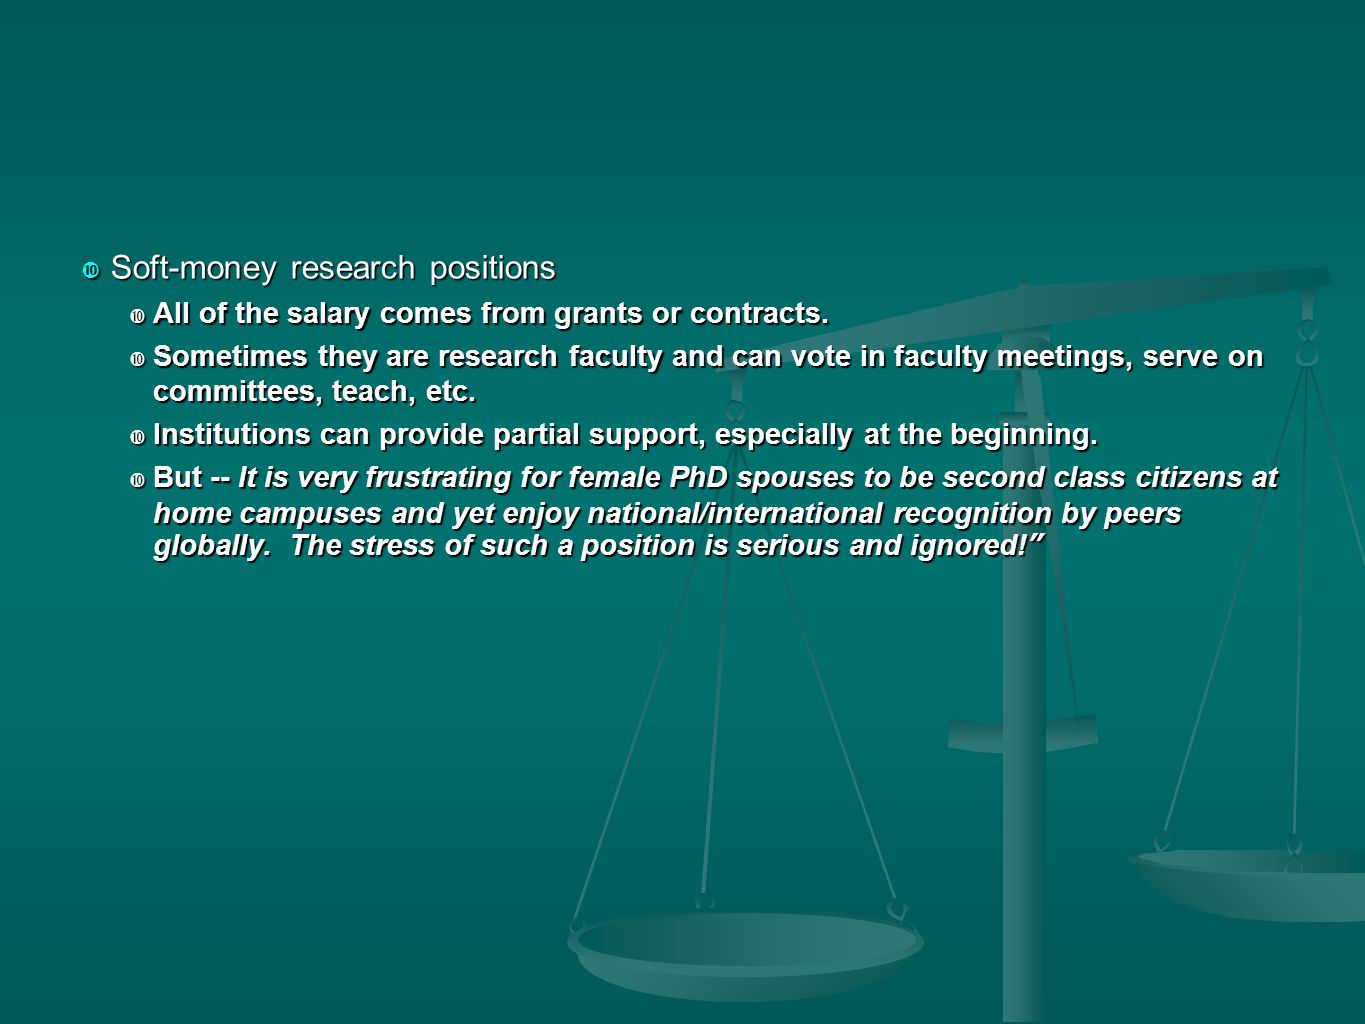  Soft-money research positions  All of the salary comes from grants or contracts.